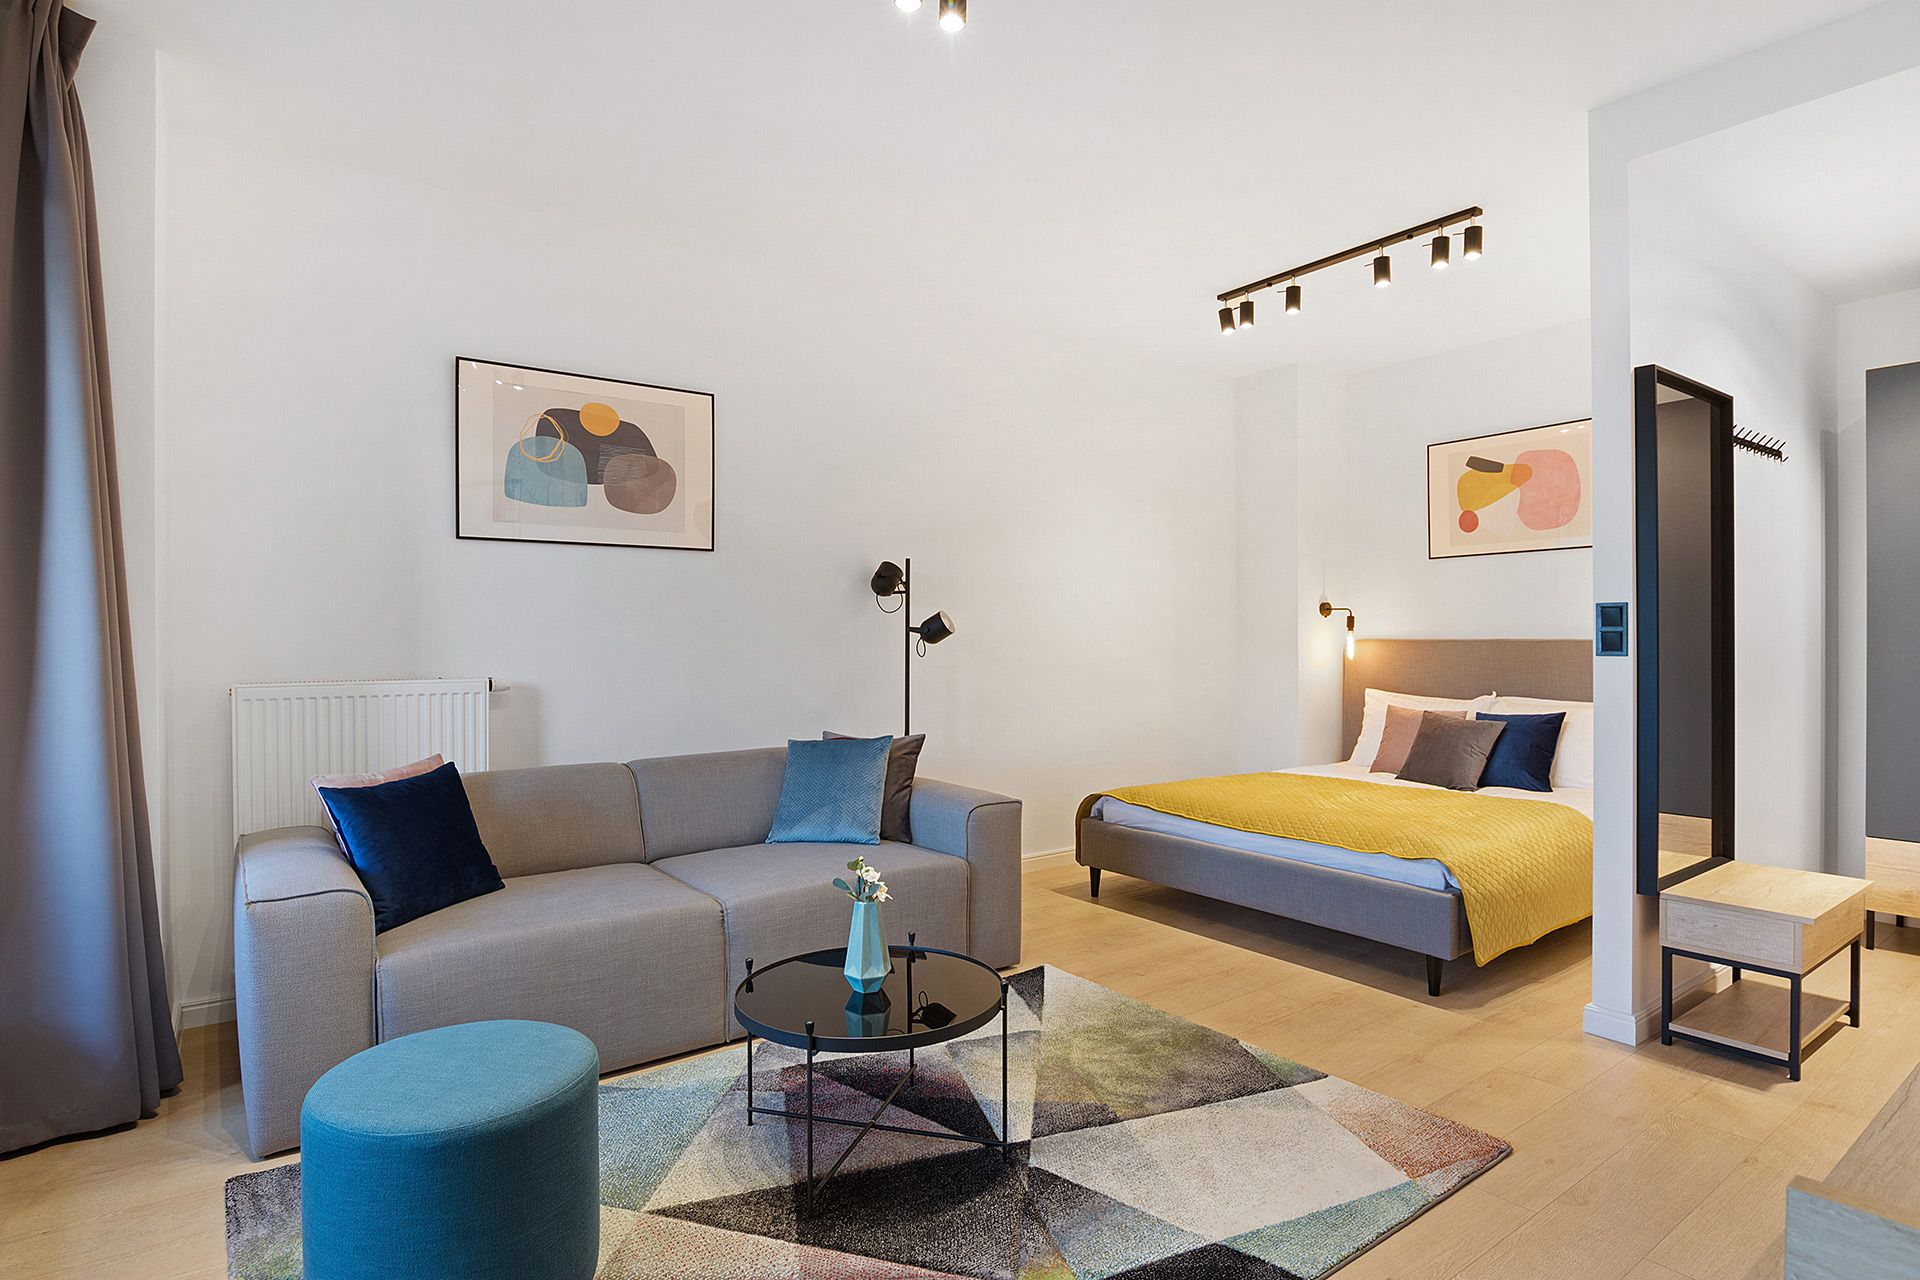 Studio - Medium apartment to rent in Warsaw UPR-A-019-2